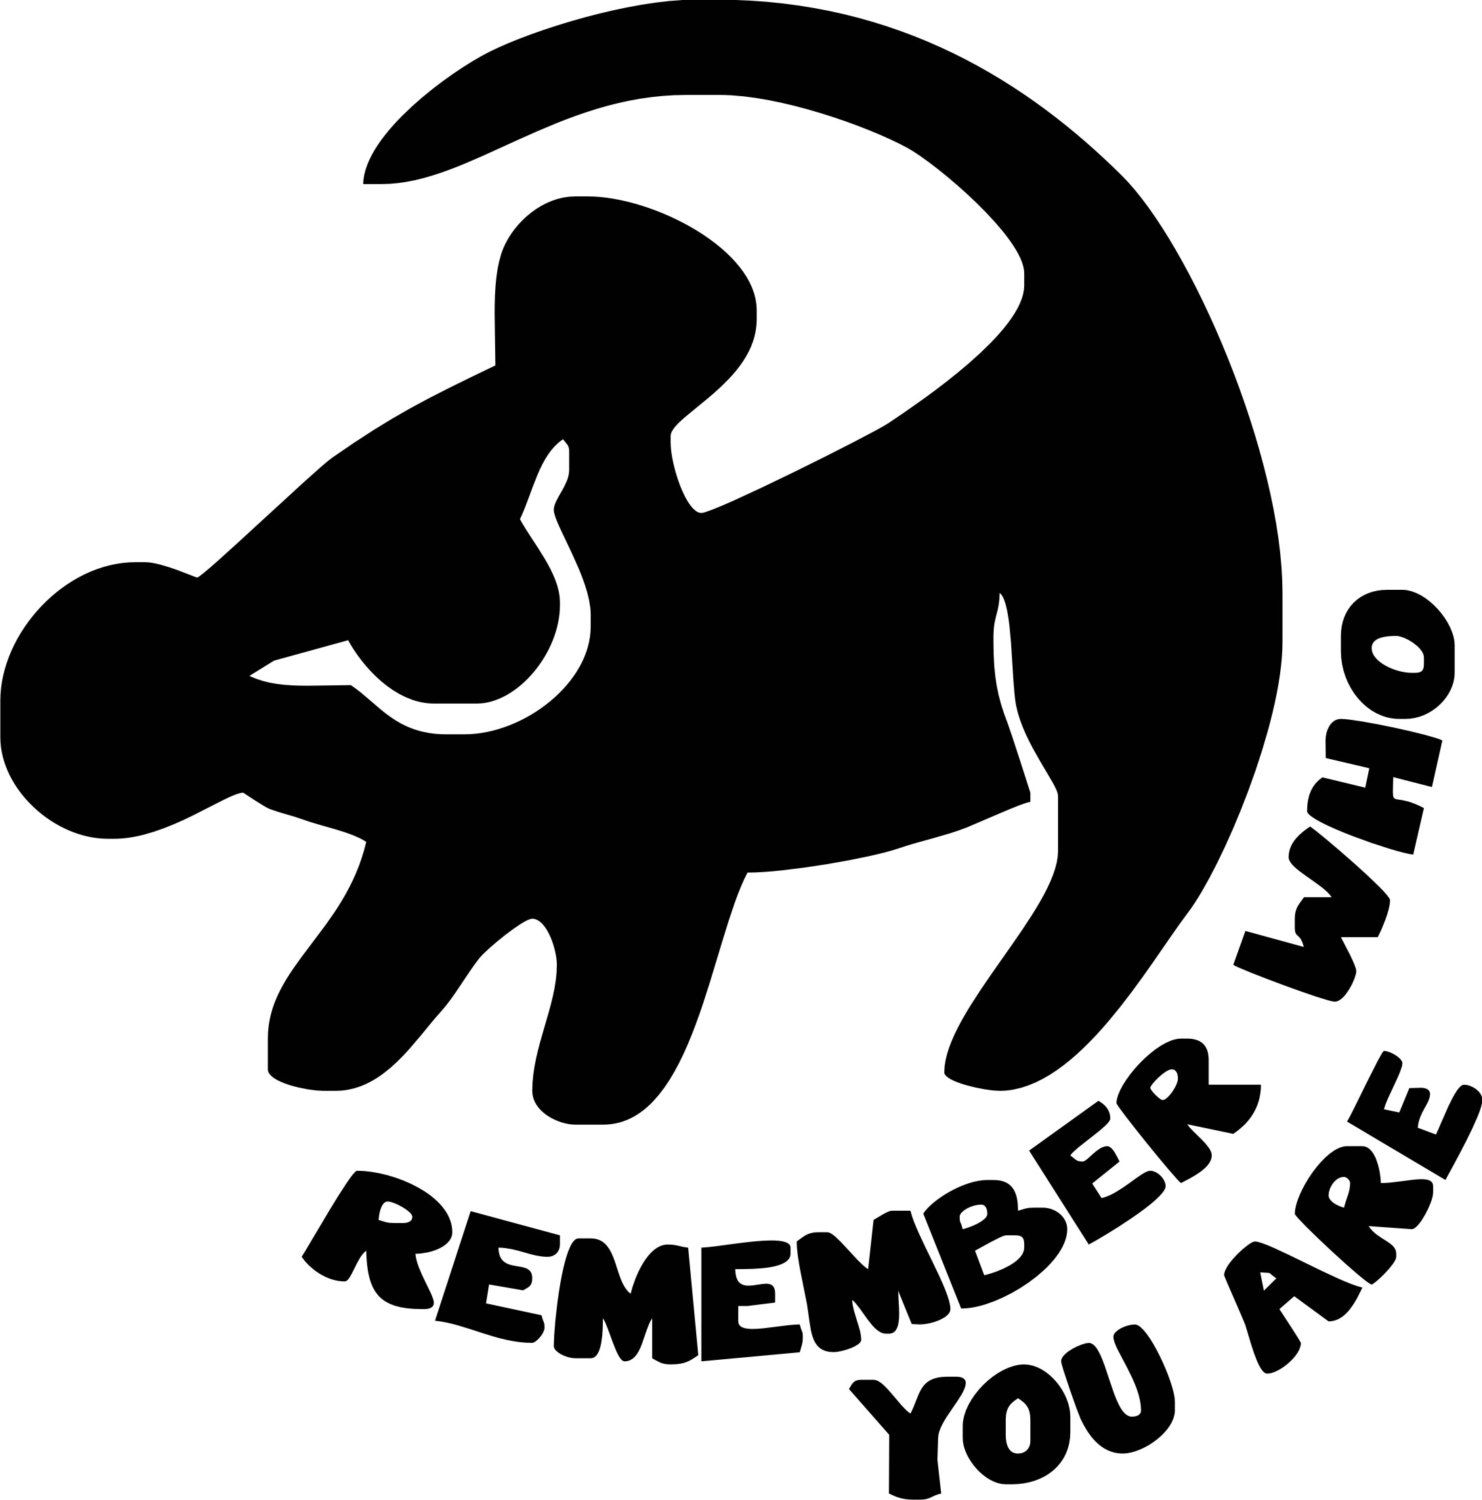 Svg file lion king silhouette remeber who you are simba rifiki simba silhouette lion king quote remember who you are biocorpaavc Gallery